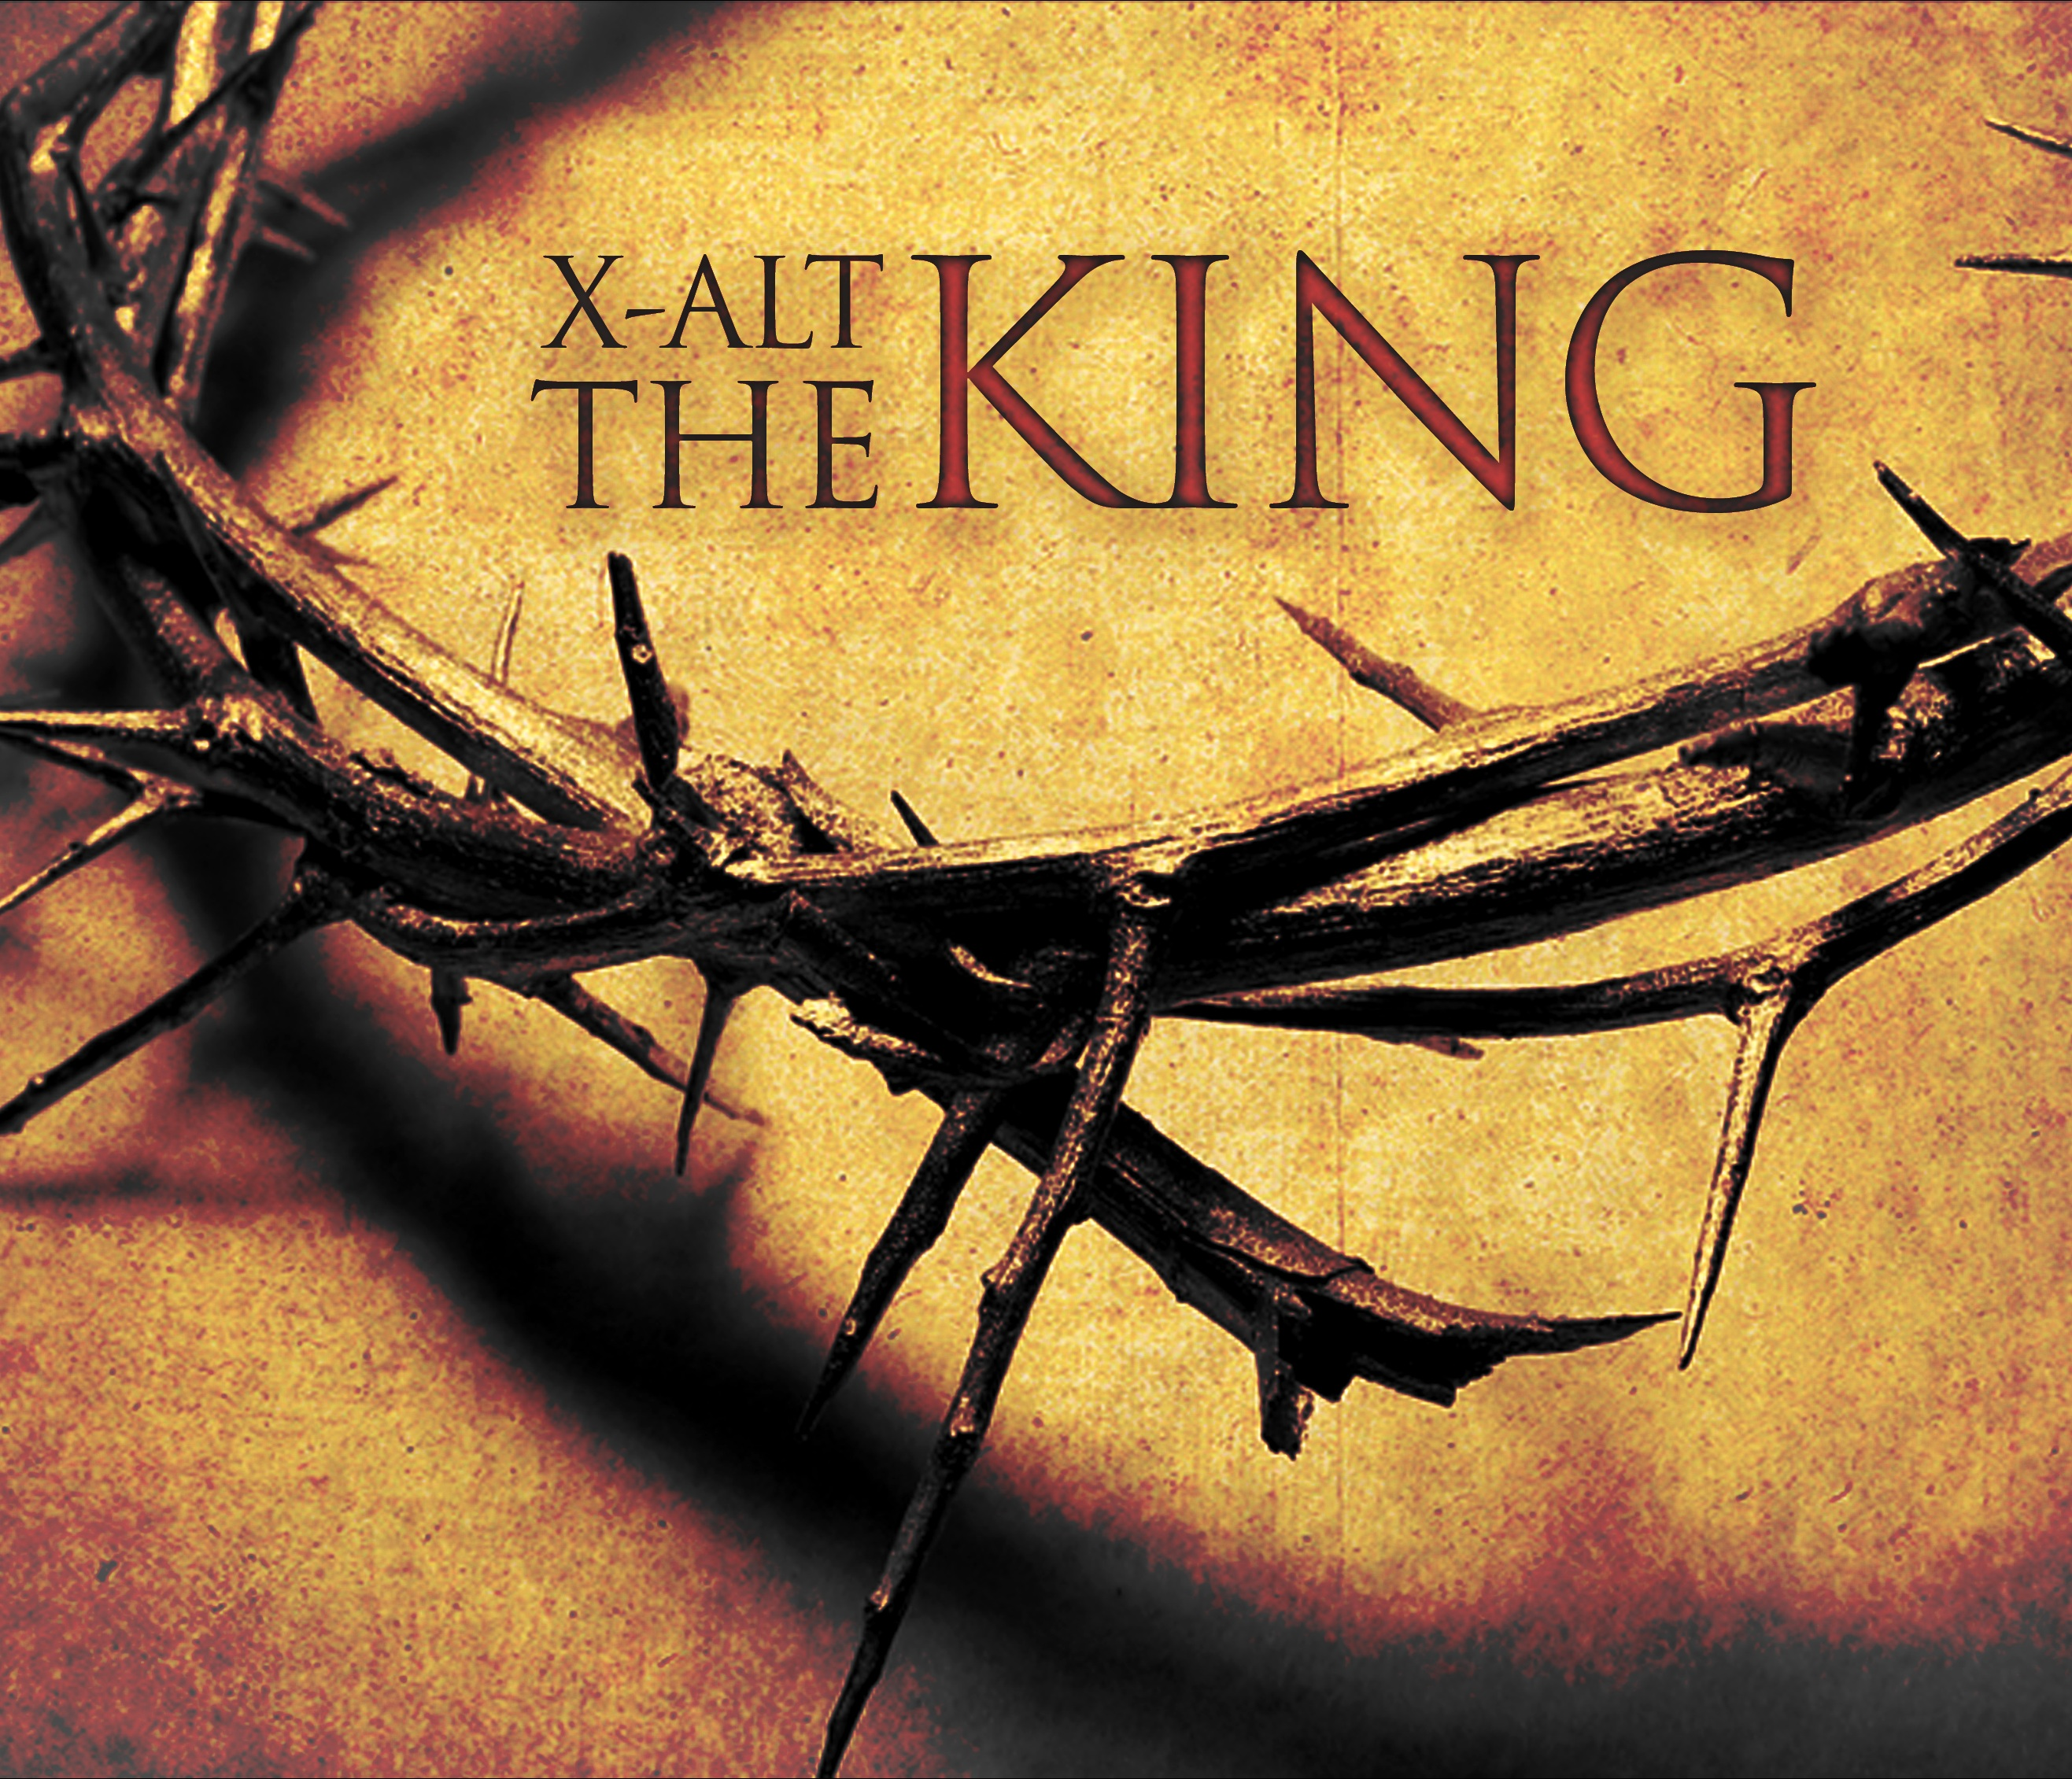 X-ALT The King